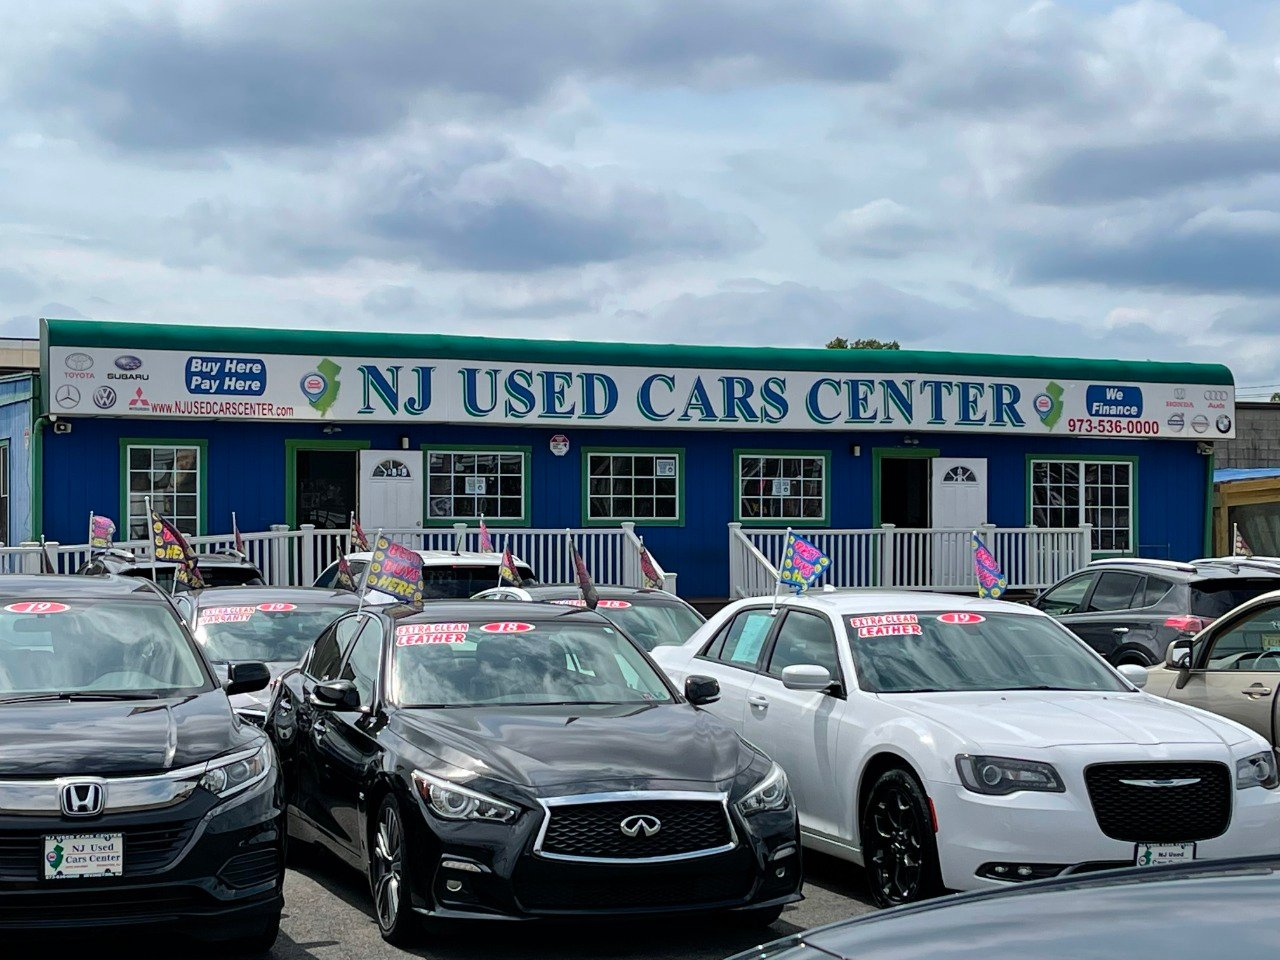 New Jersey Used Cars Center